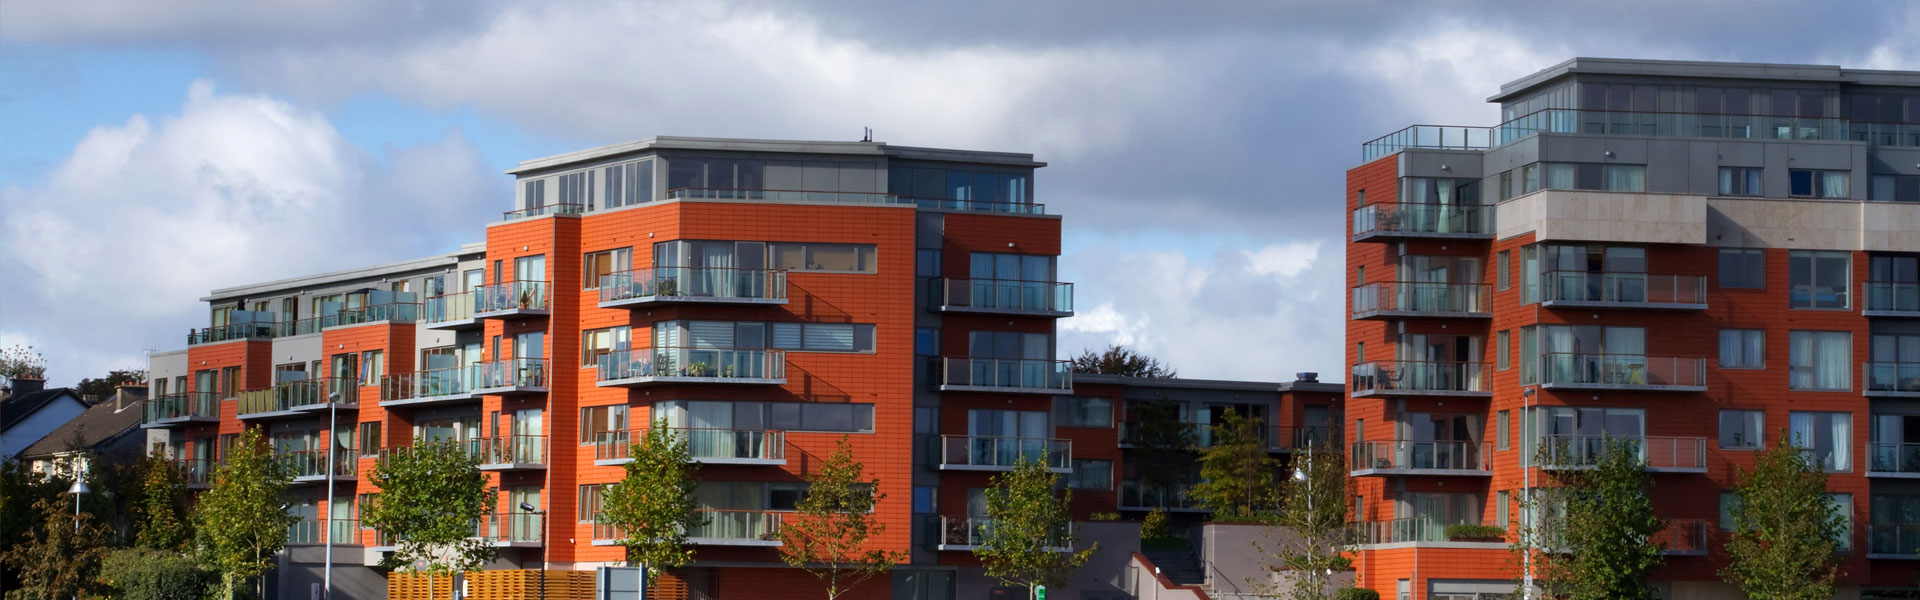 professional Commercial property management in Ballycallar